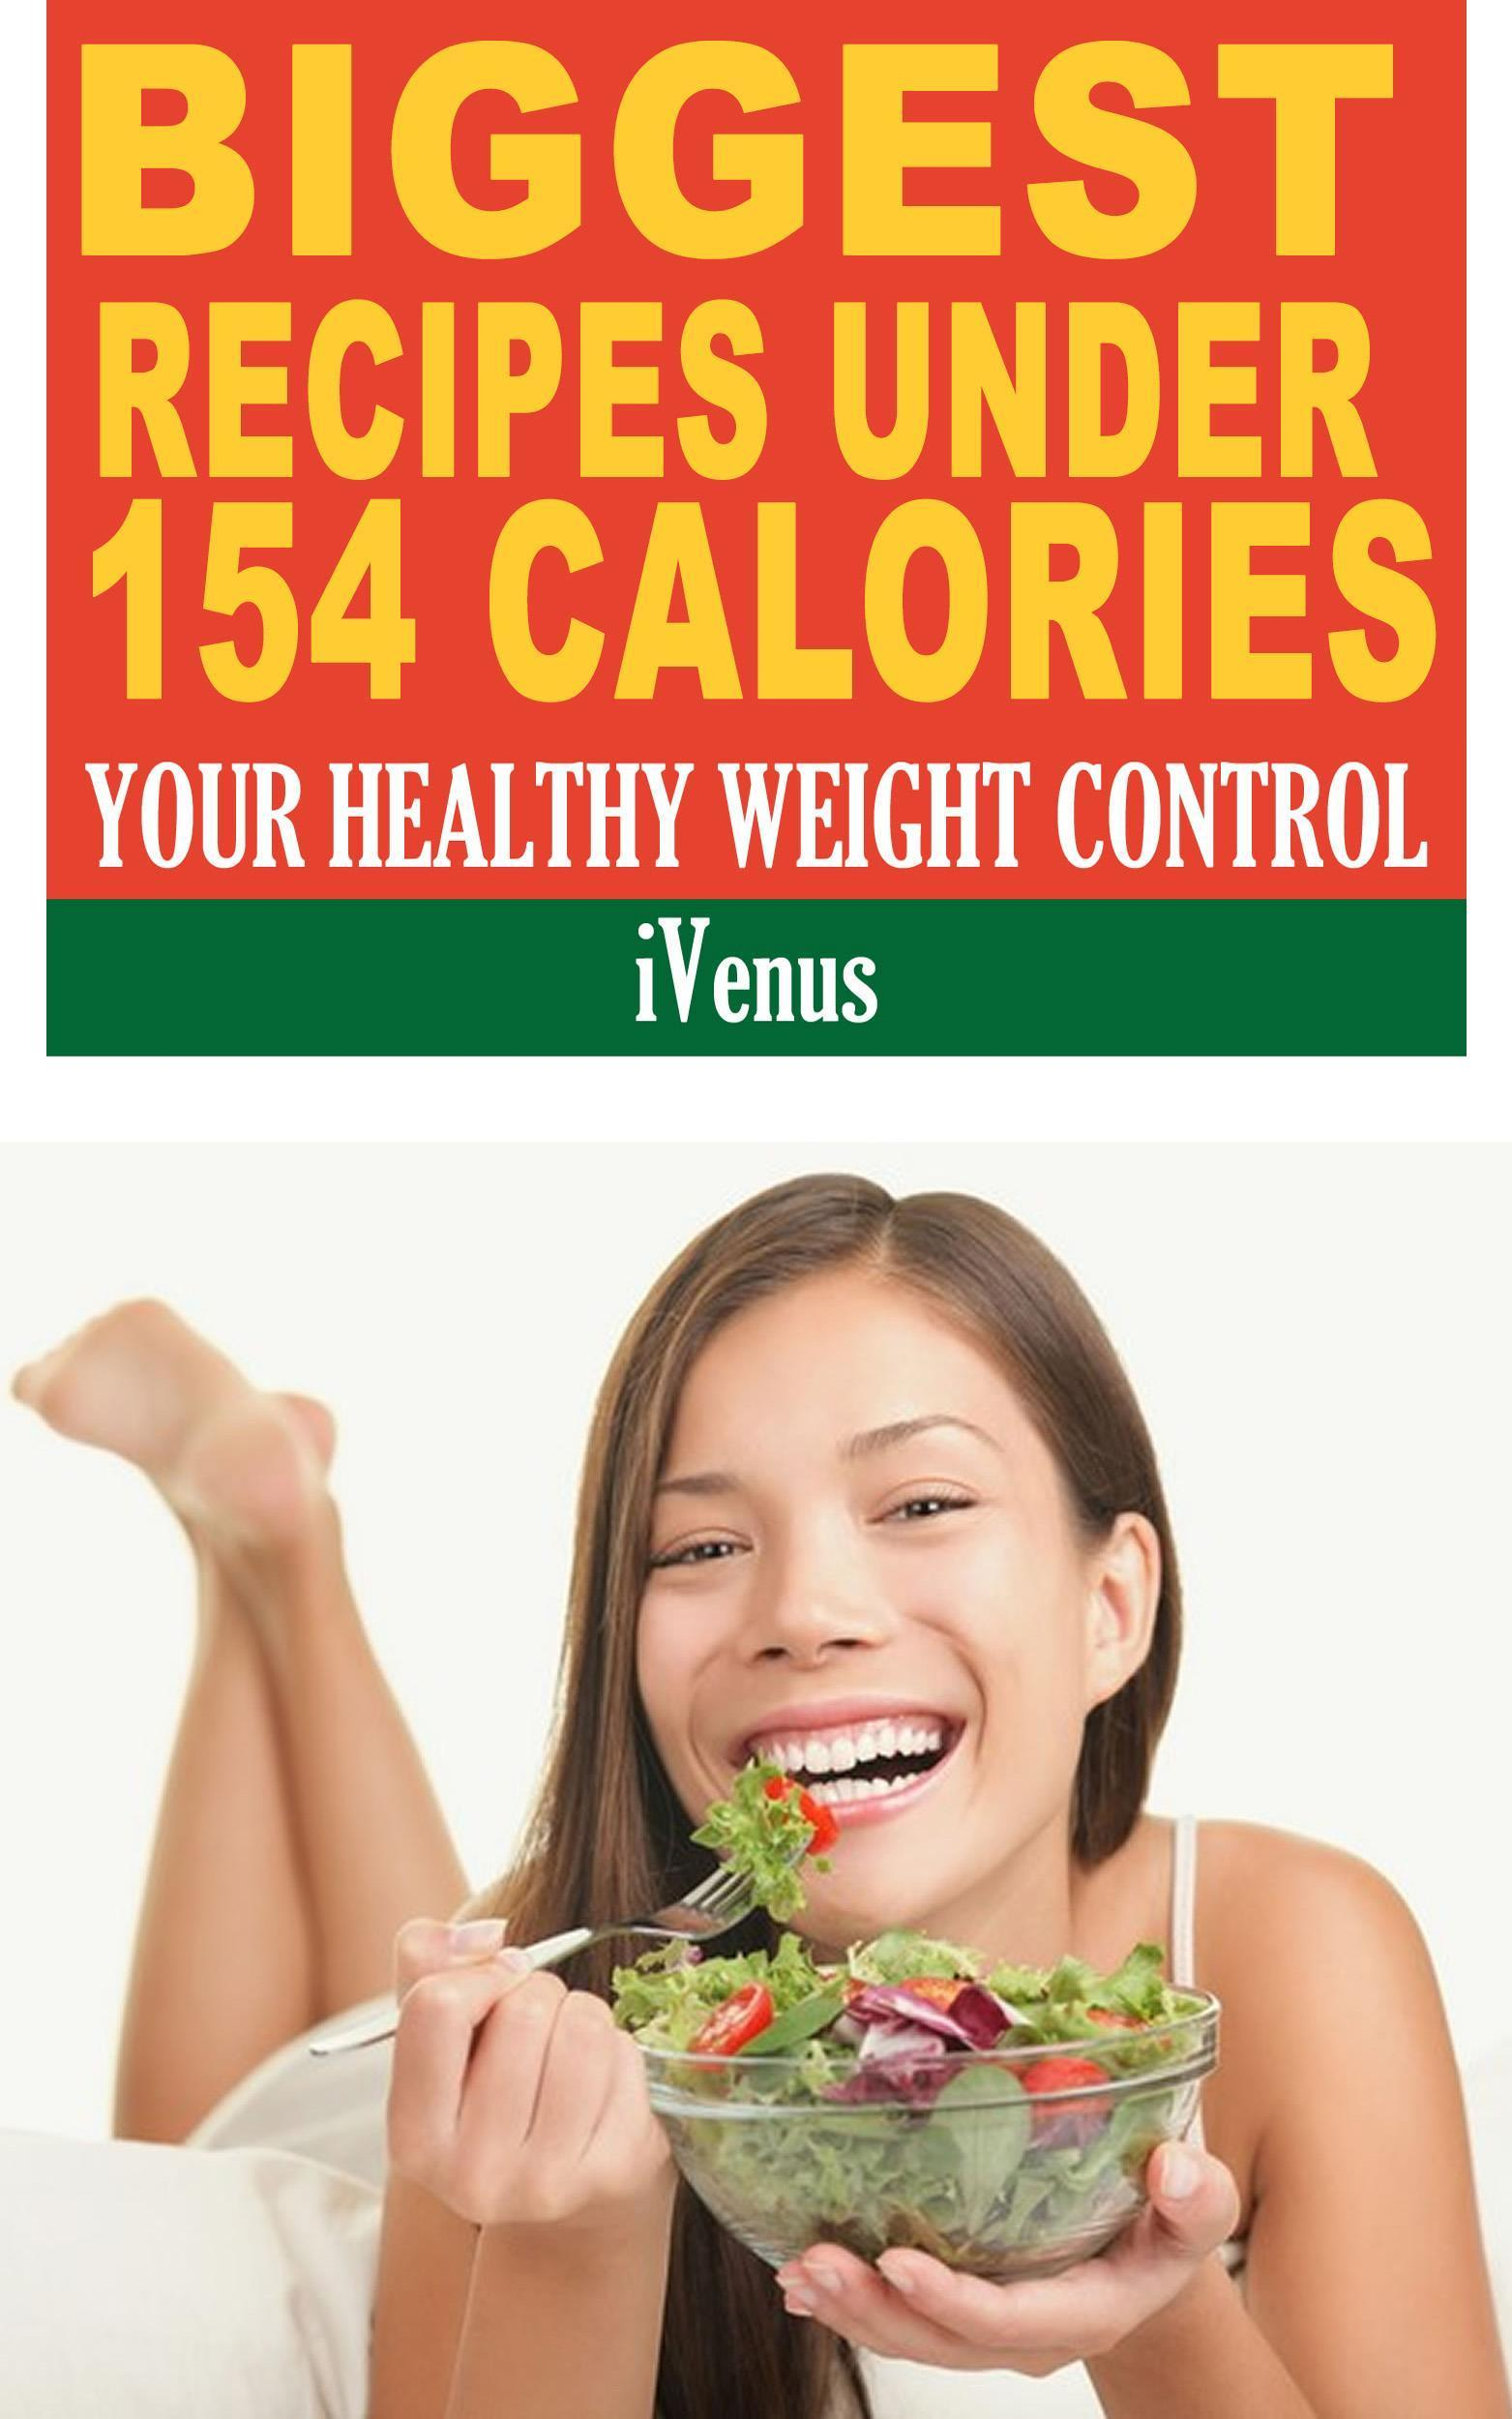 Biggest Recipes Under 154 Calories Your Healthy Weight Control  by  iVenus